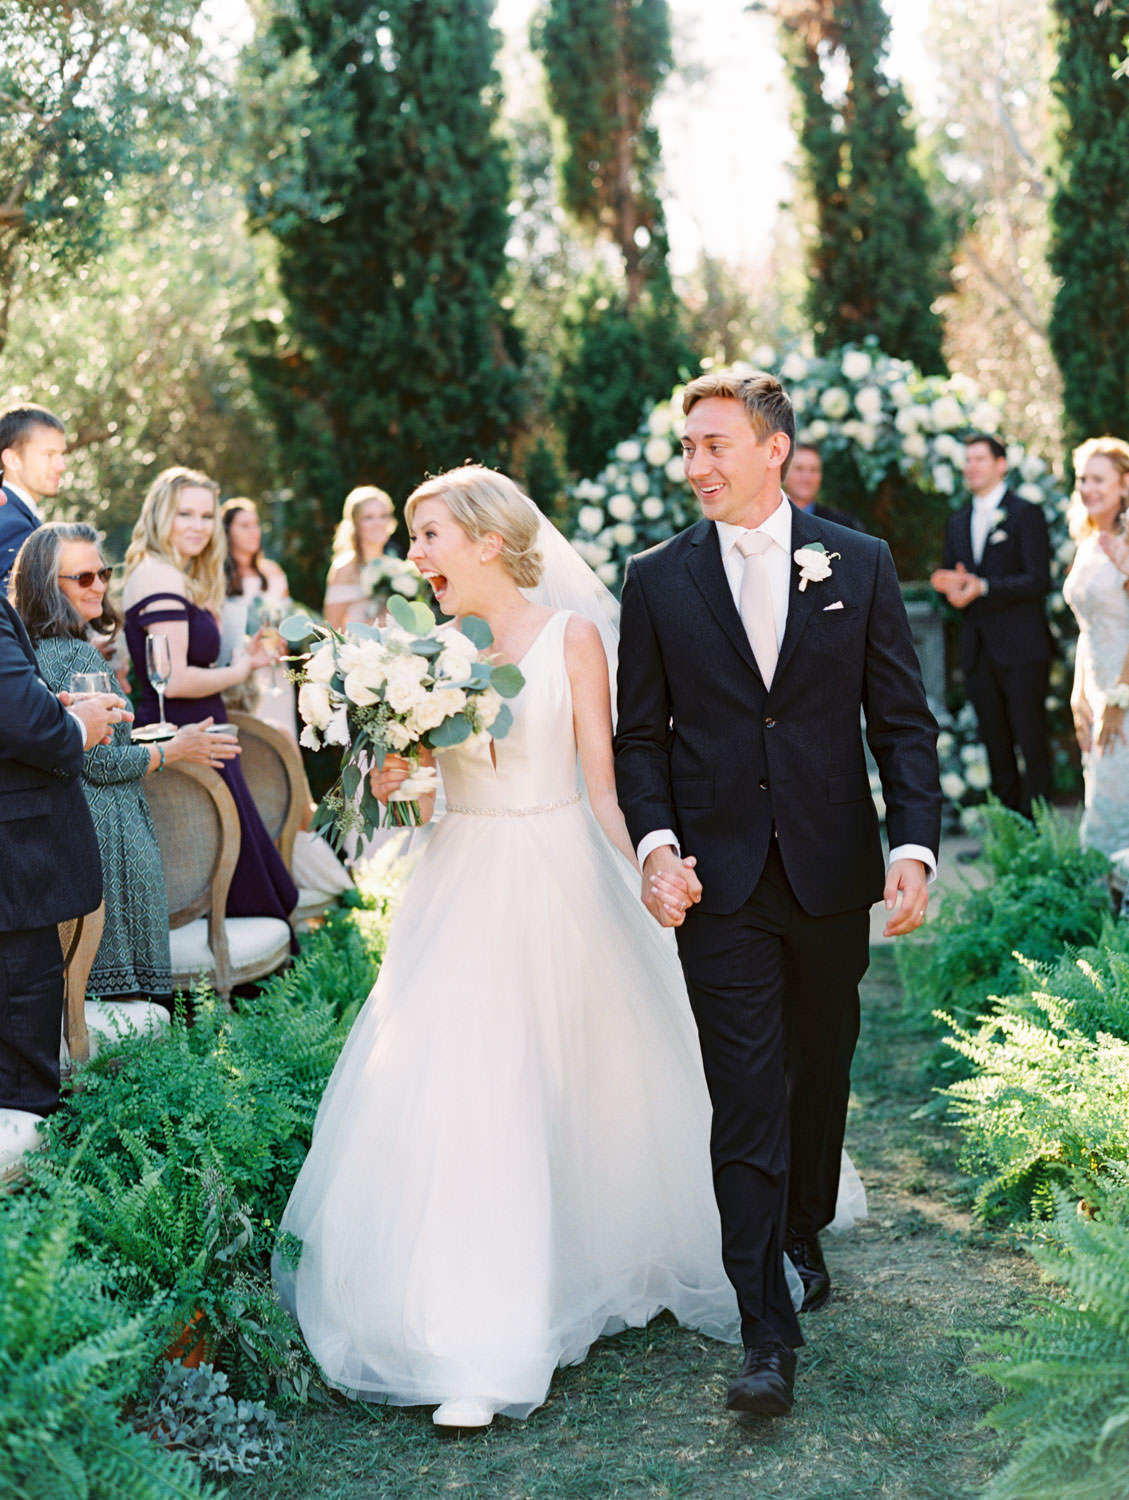 Bride walking up the aisle after the ceremony. Circular ceremony arch with silver dollar eucalyptus, white dahlias and roses. Olive Lawn ceremony with cane back Louis chairs and ferns along the aisle. Estancia La Jolla wedding shot on film by Cavin Elizabeth Photography